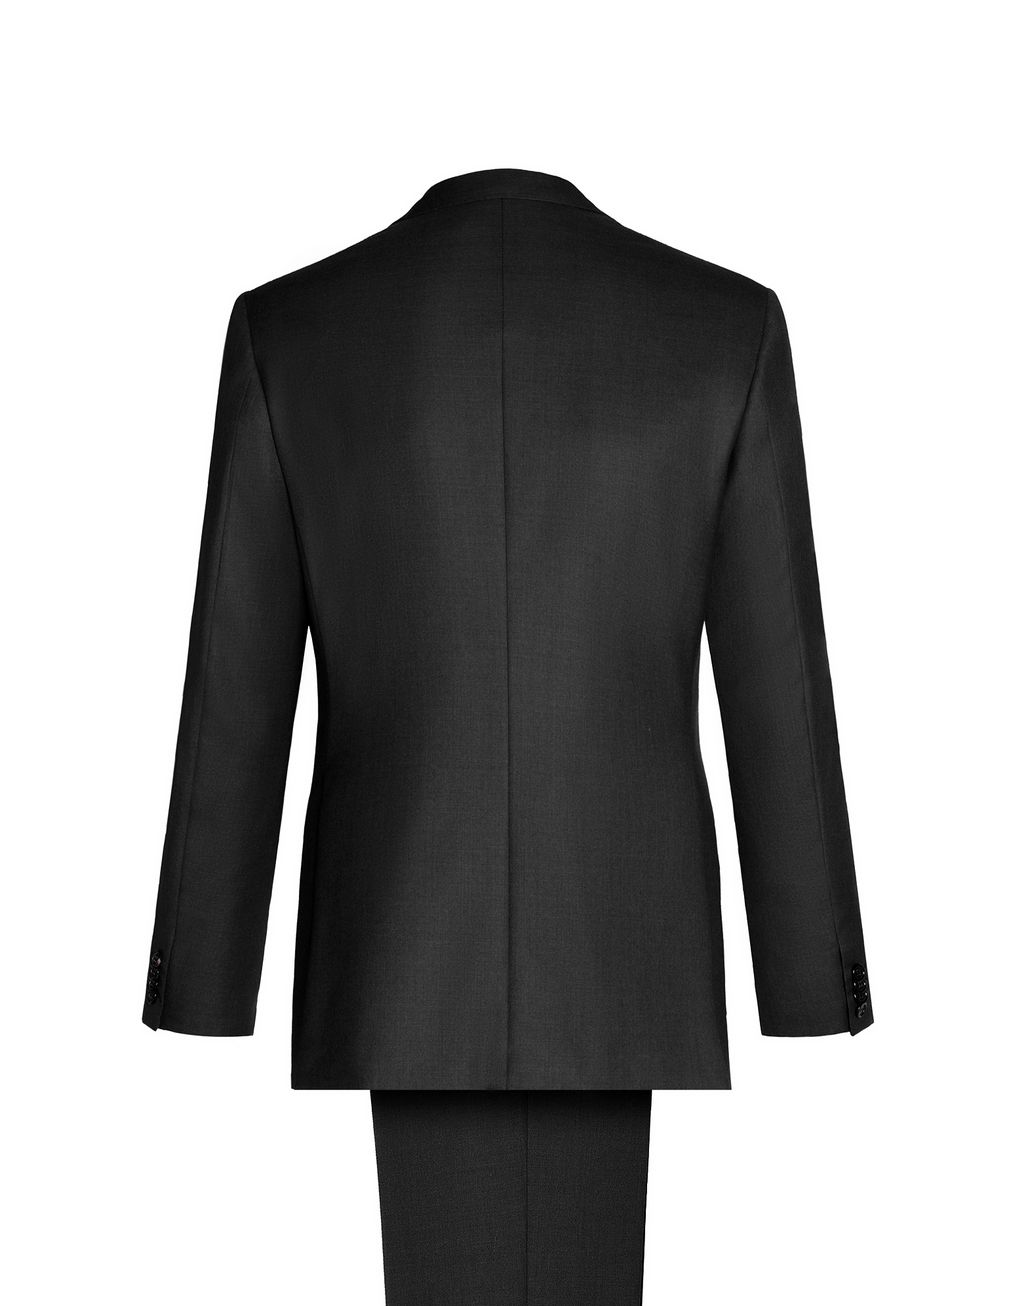 BRIONI Abito Madison Nero Suits & Jackets Uomo r